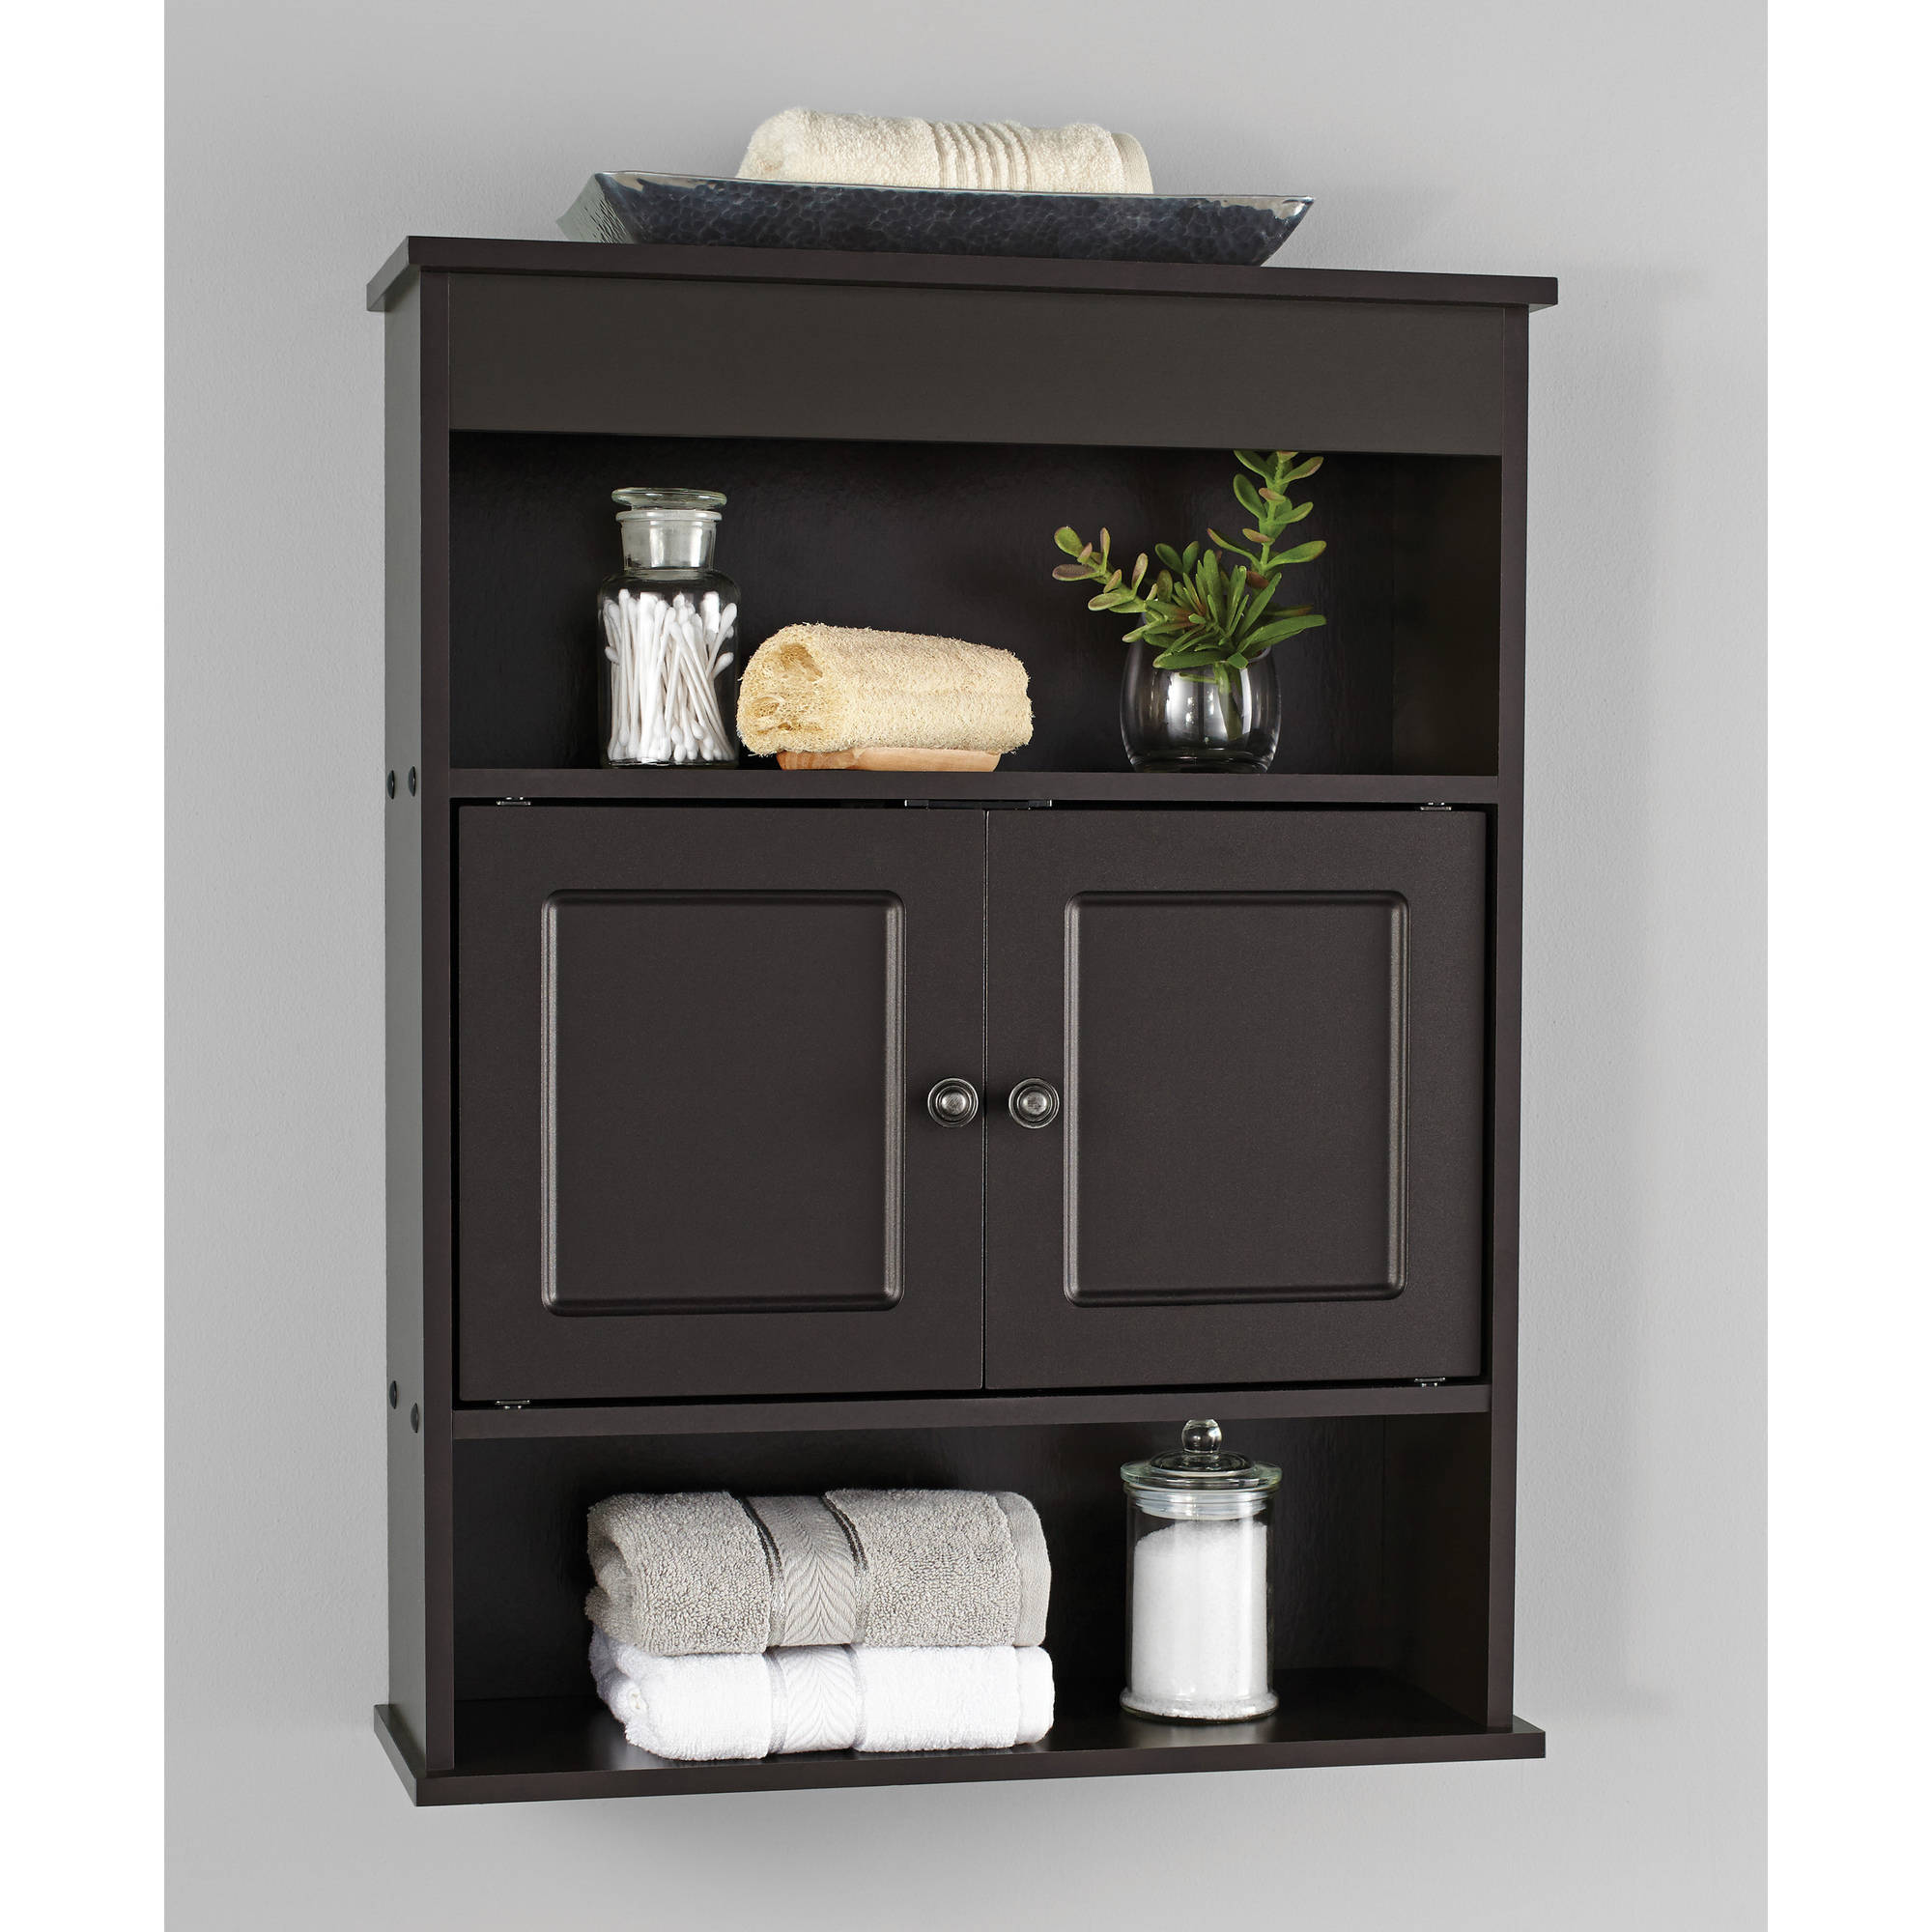 Ordinaire Chapter Bathroom Wall Cabinet, Espresso   Walmart.com